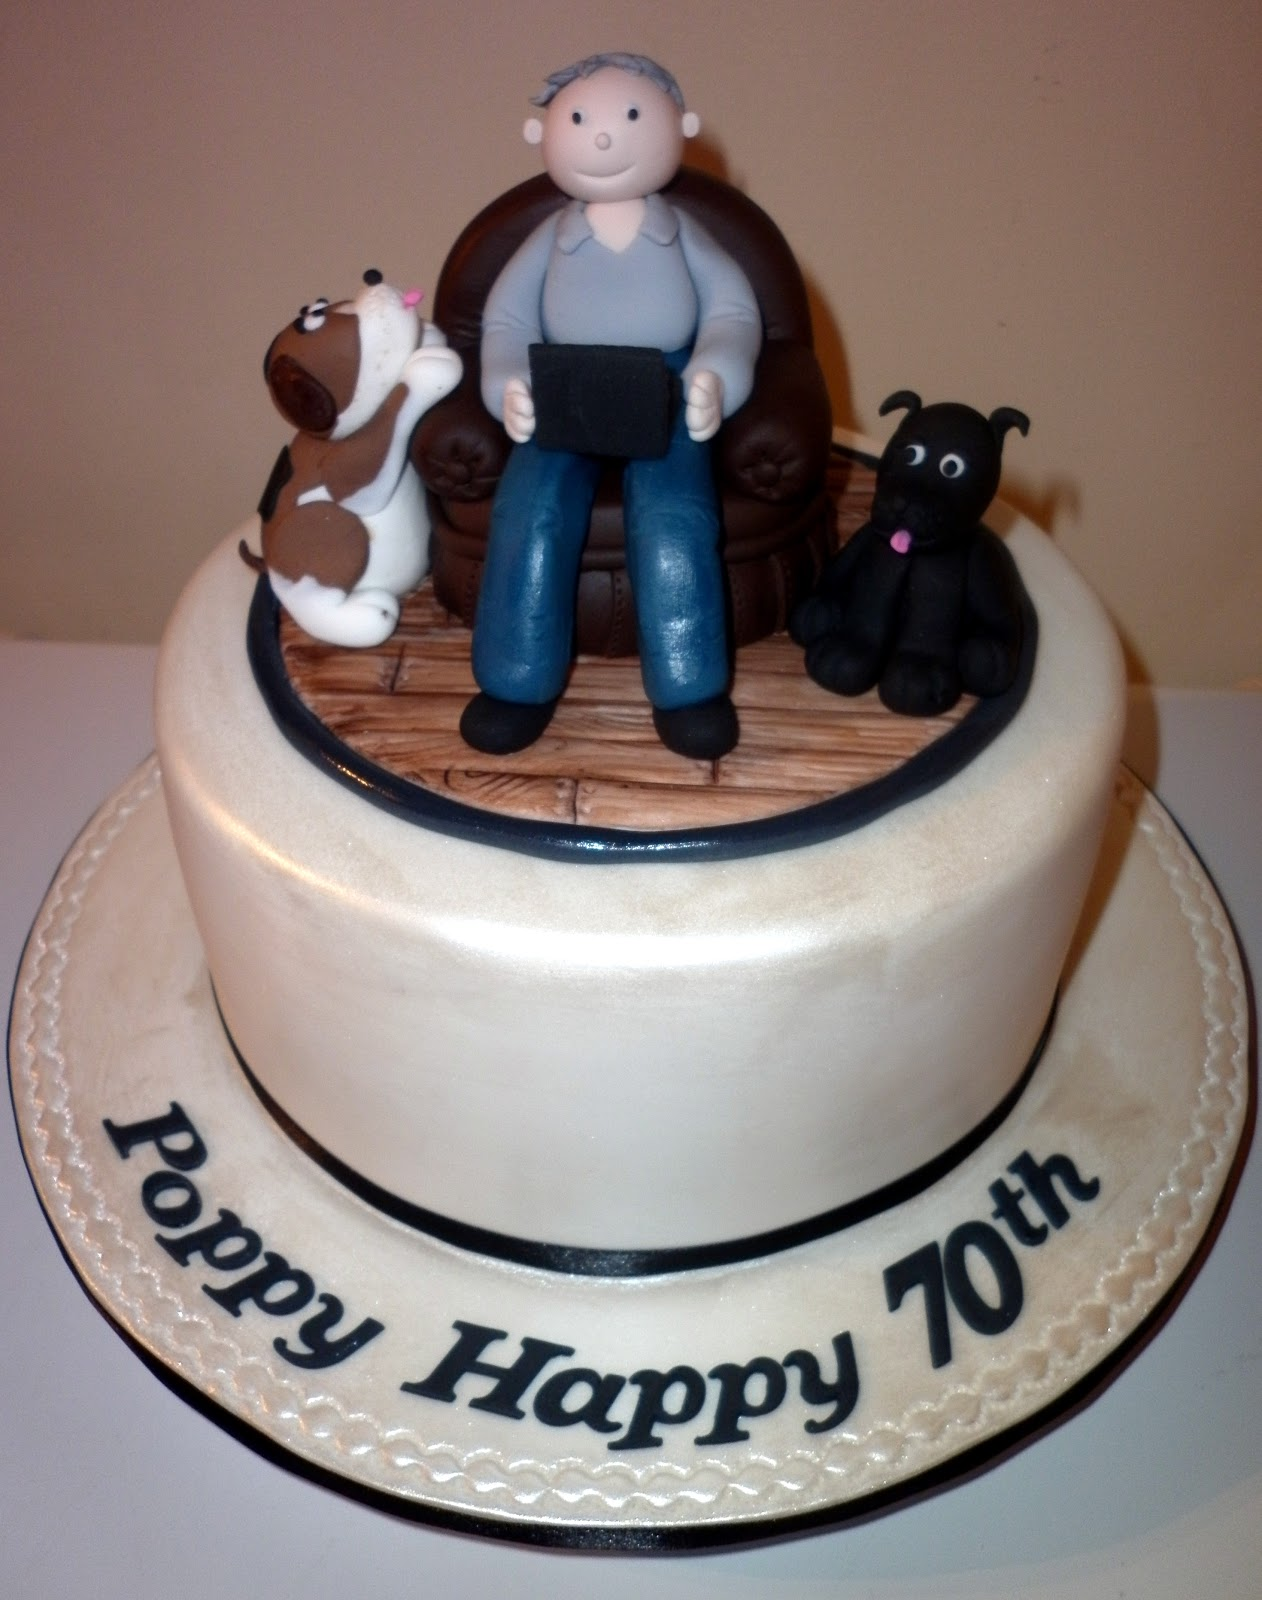 Caketopia: 70th Birthday Cake